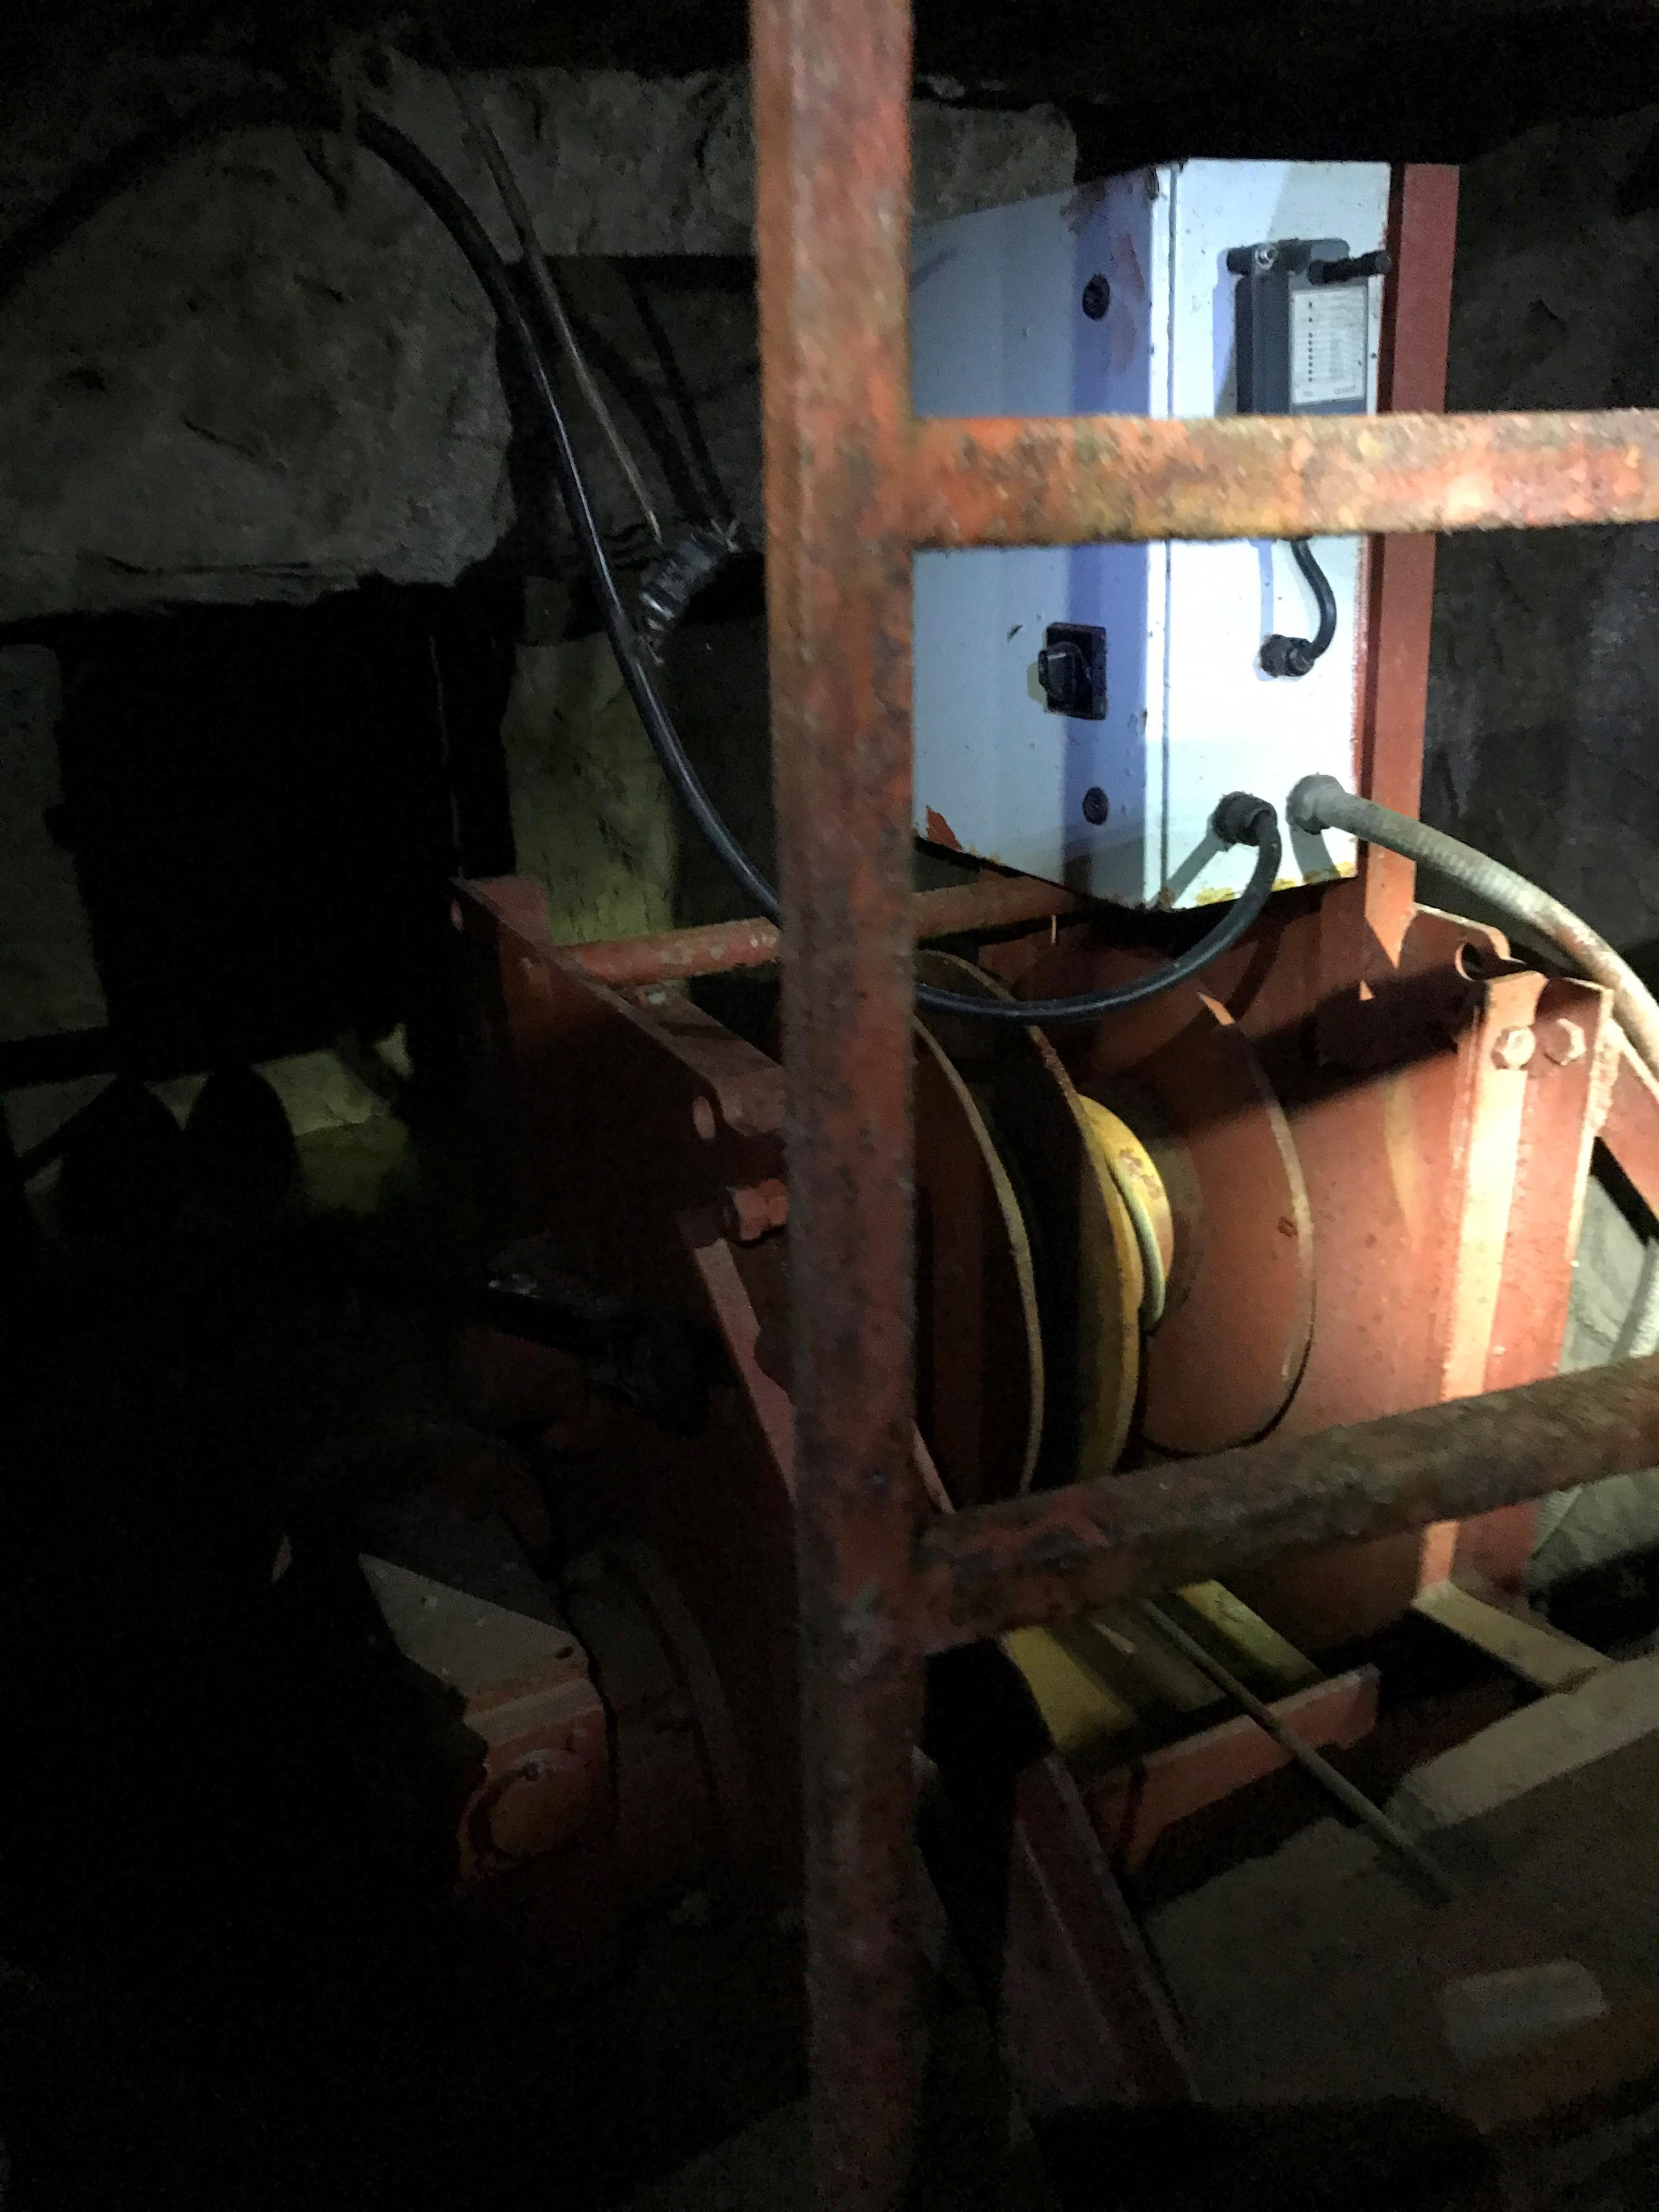 Photograph of the winch used to operate the tunnel elevator in the San Diego tunnel.